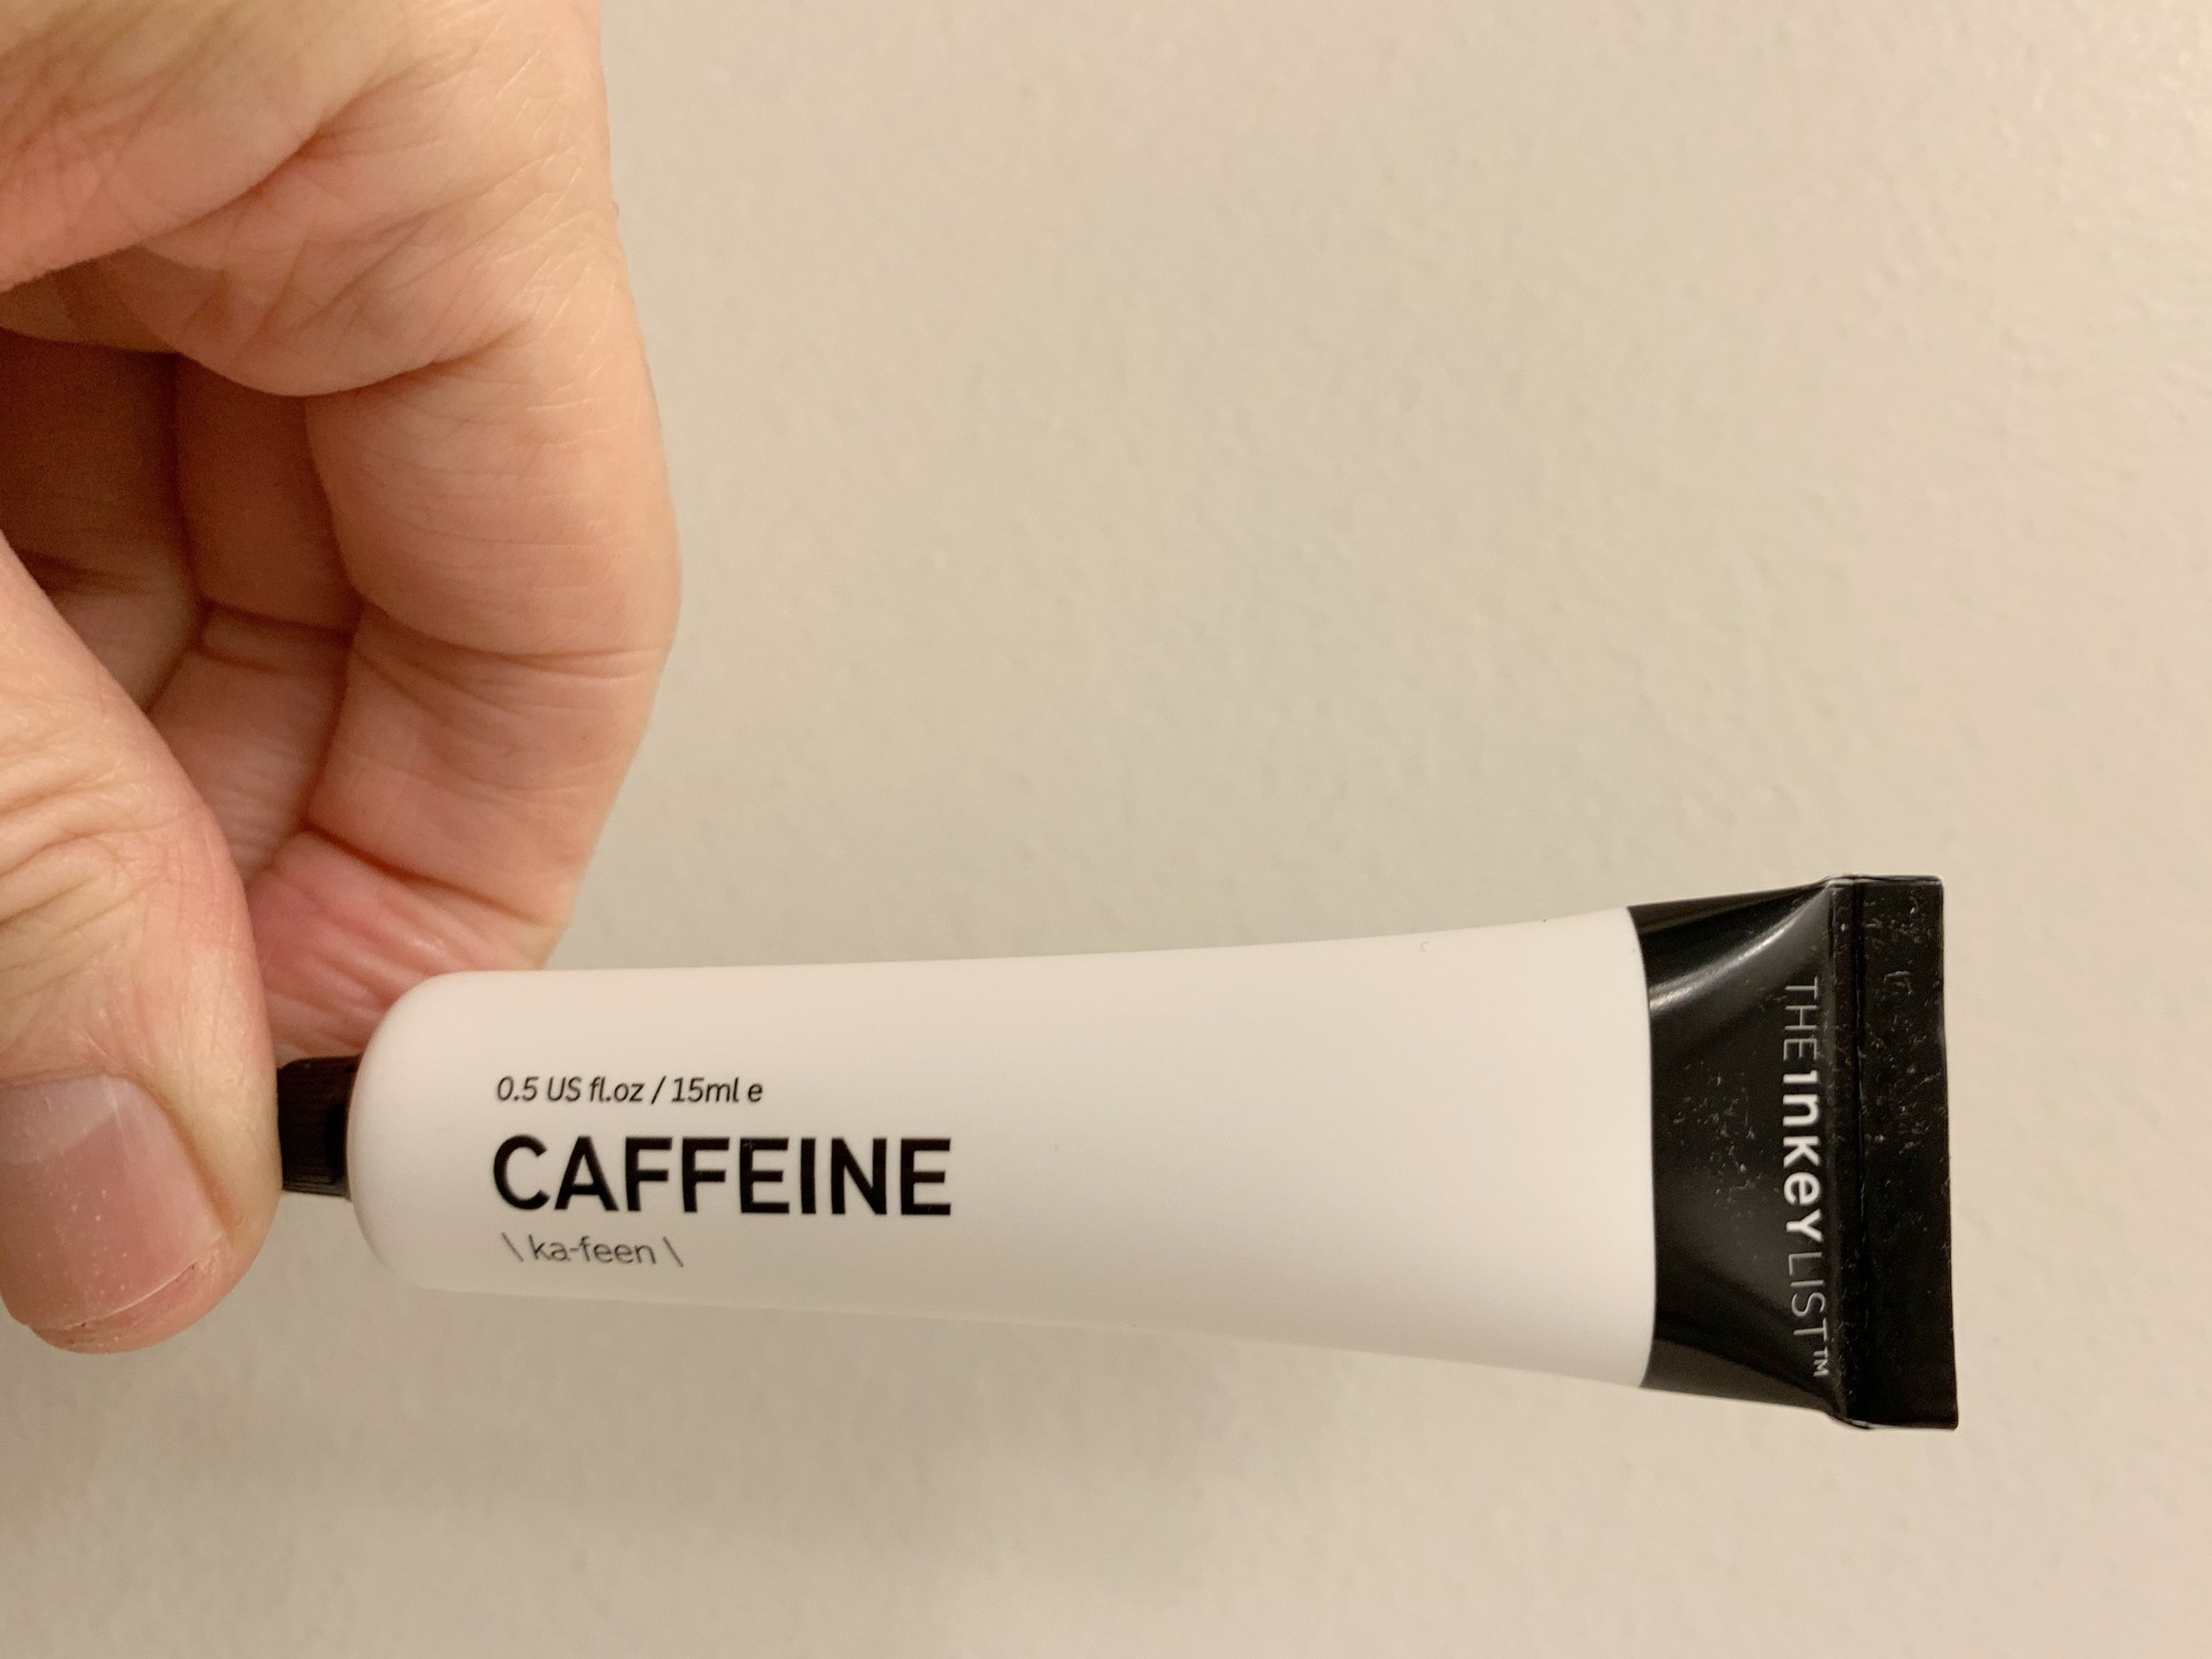 The Inkey List's Caffeine Eye Serum is a super lightweight, silky treatment for eyes.